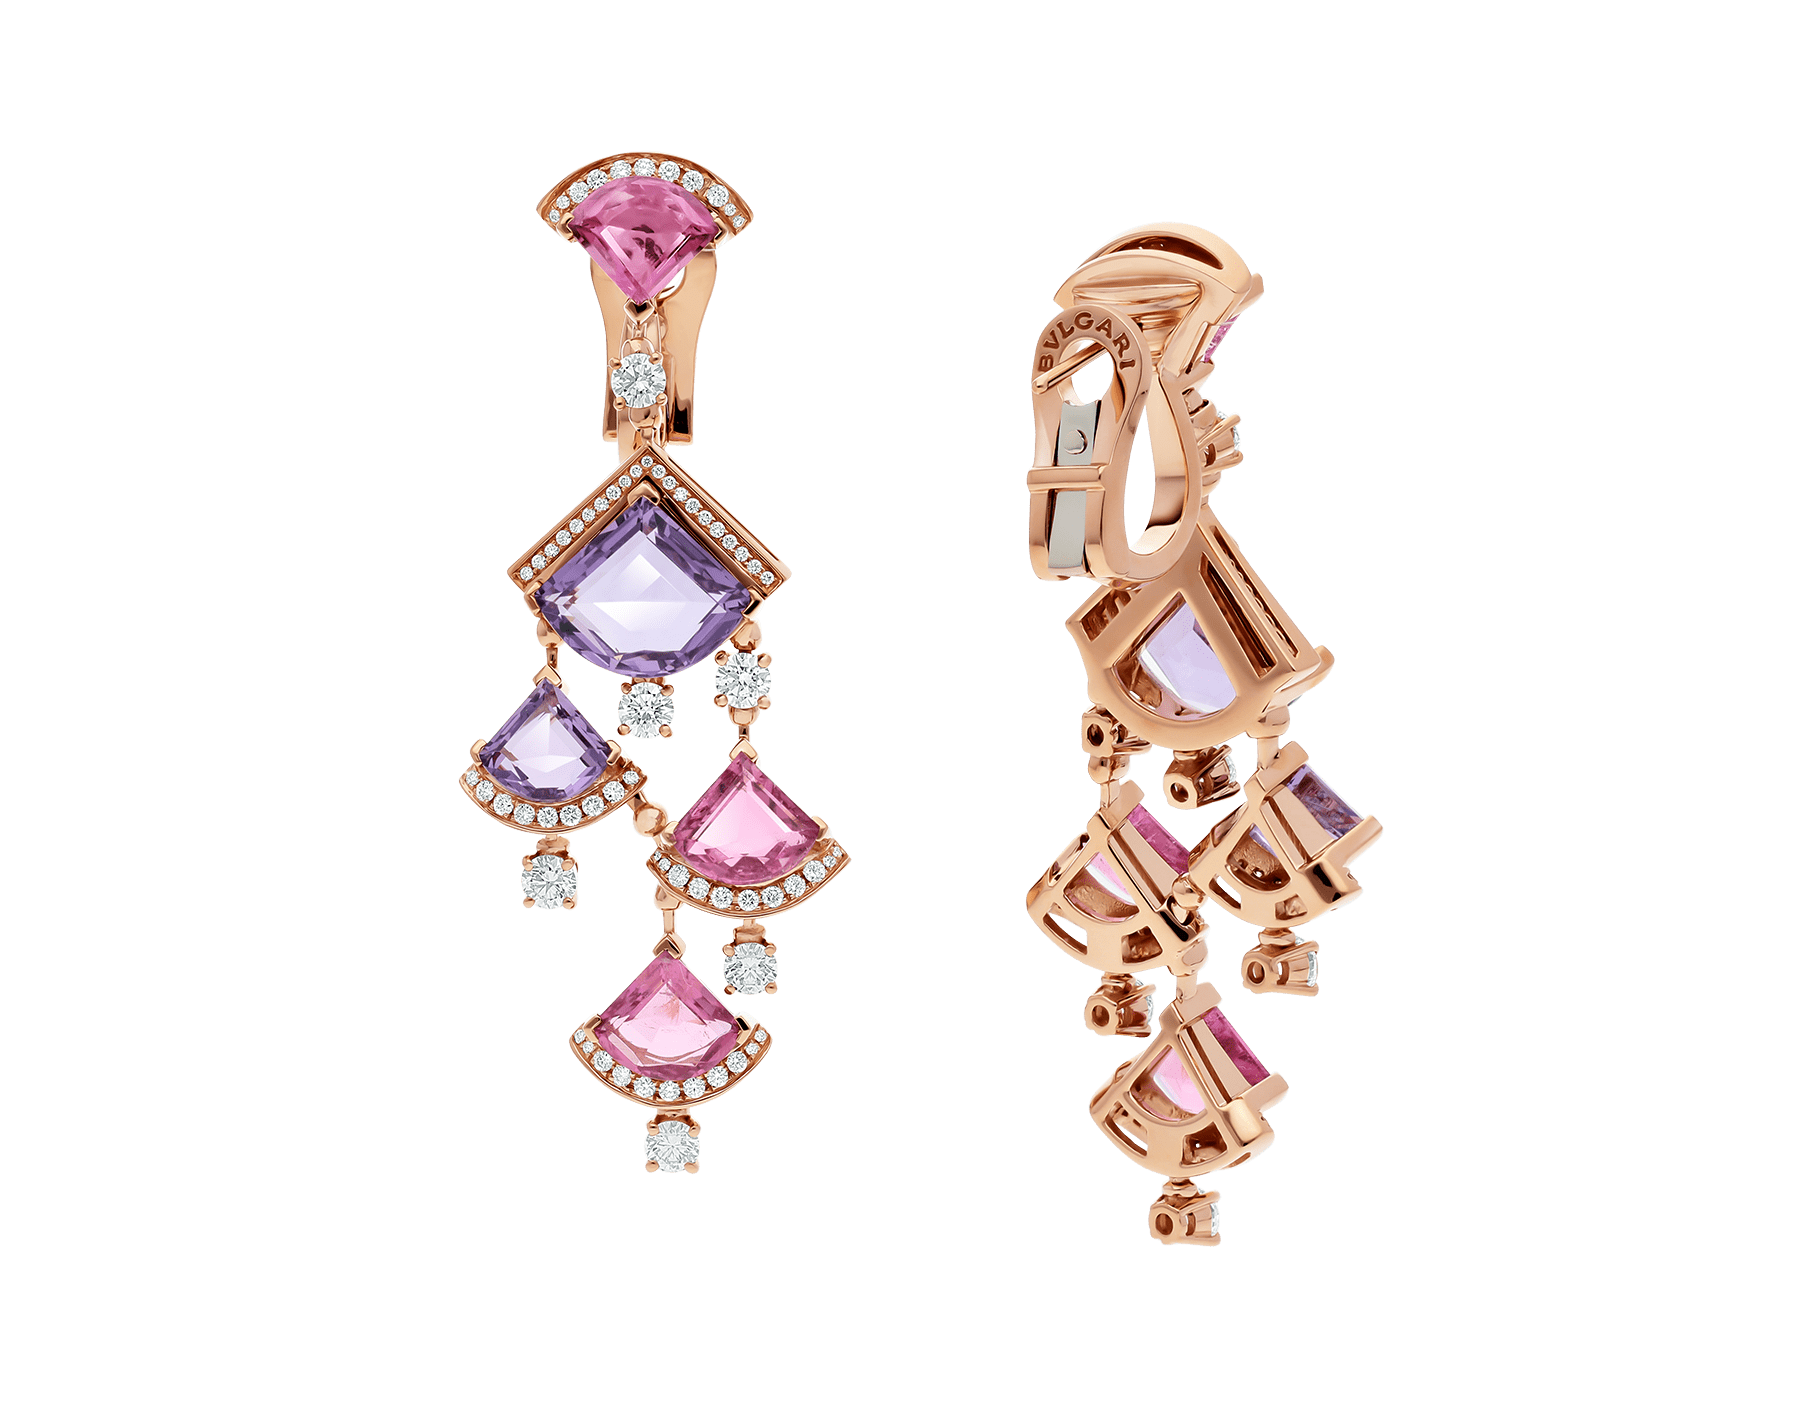 DIVAS' DREAM earrings in 18 kt rose gold, set with pink rubellite, amethyst and pavé diamonds. 354078 image 3